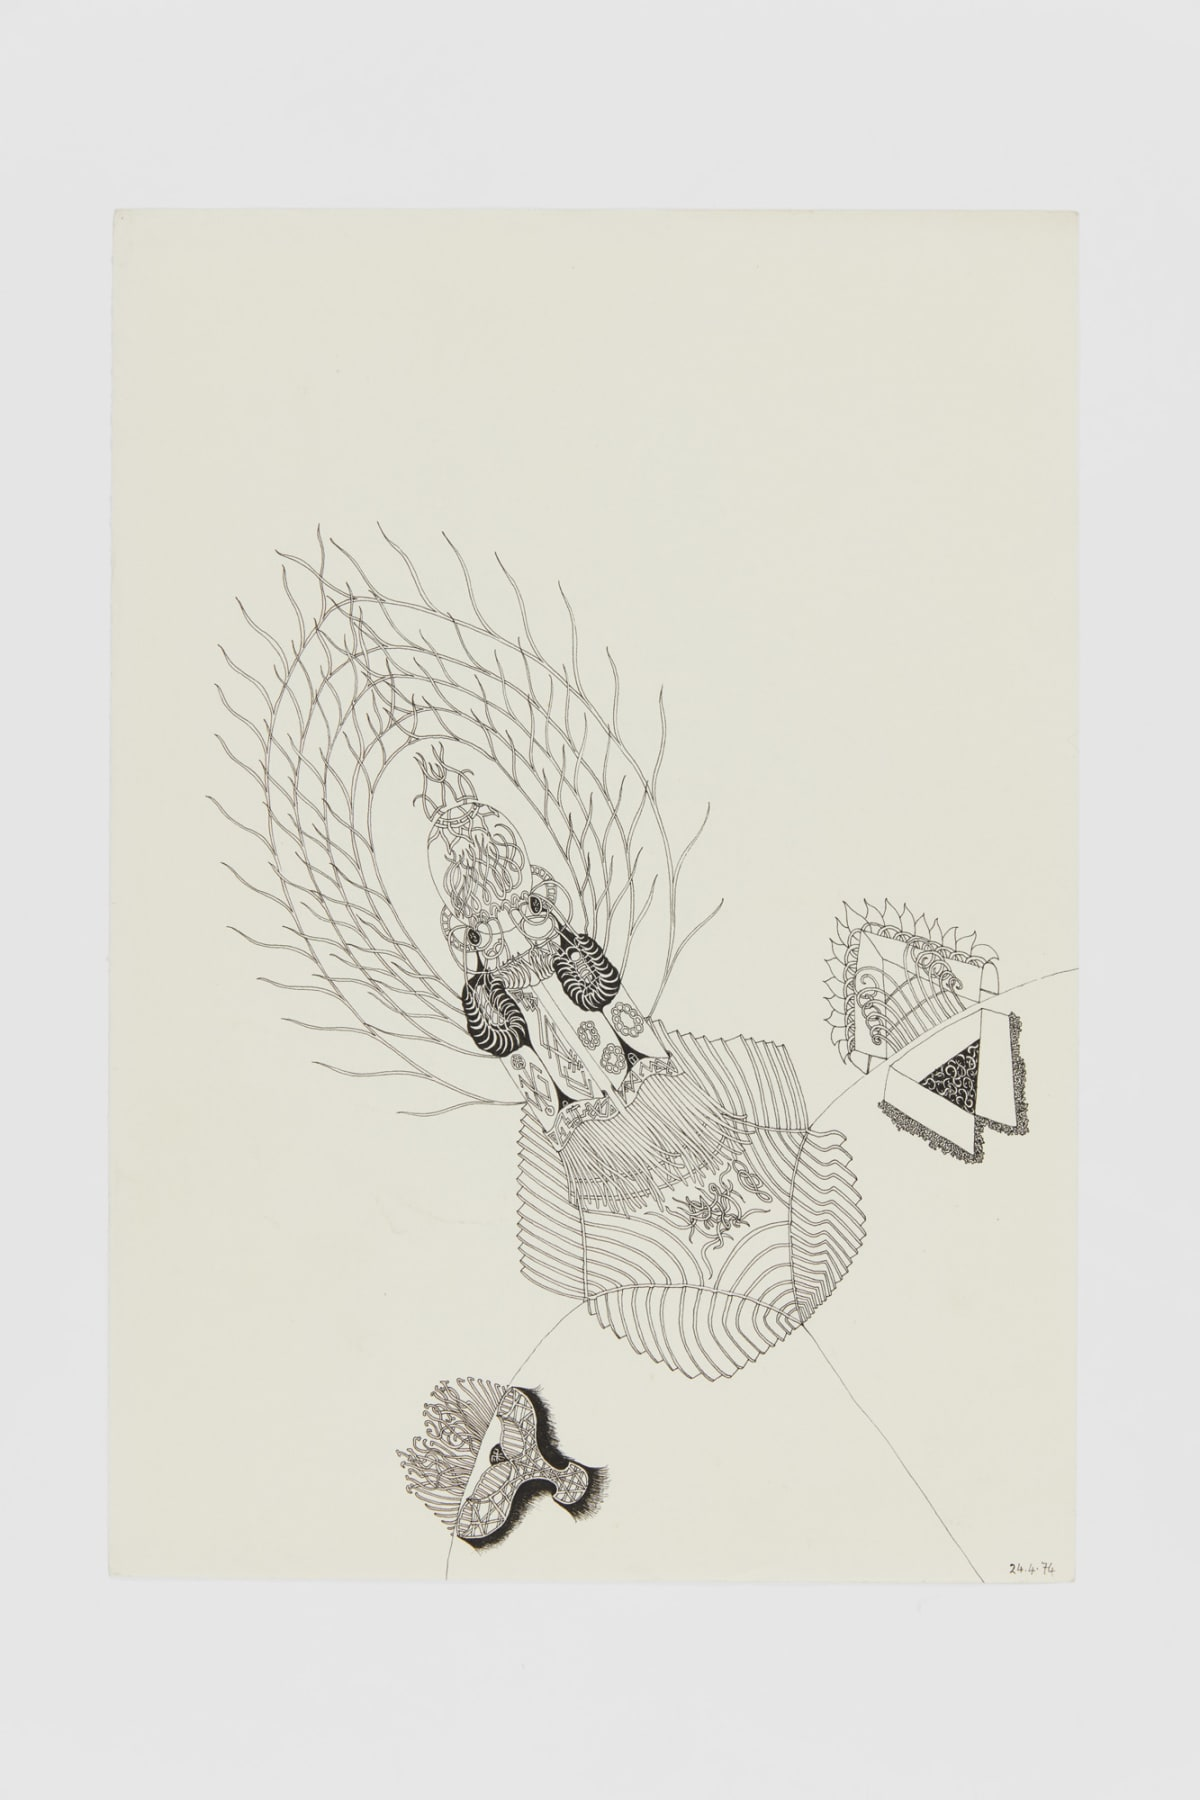 Ann CHURCHILL 24.4.74 (Daily drawings), 1974 Pen on paper 29.7 x 20.9 cm